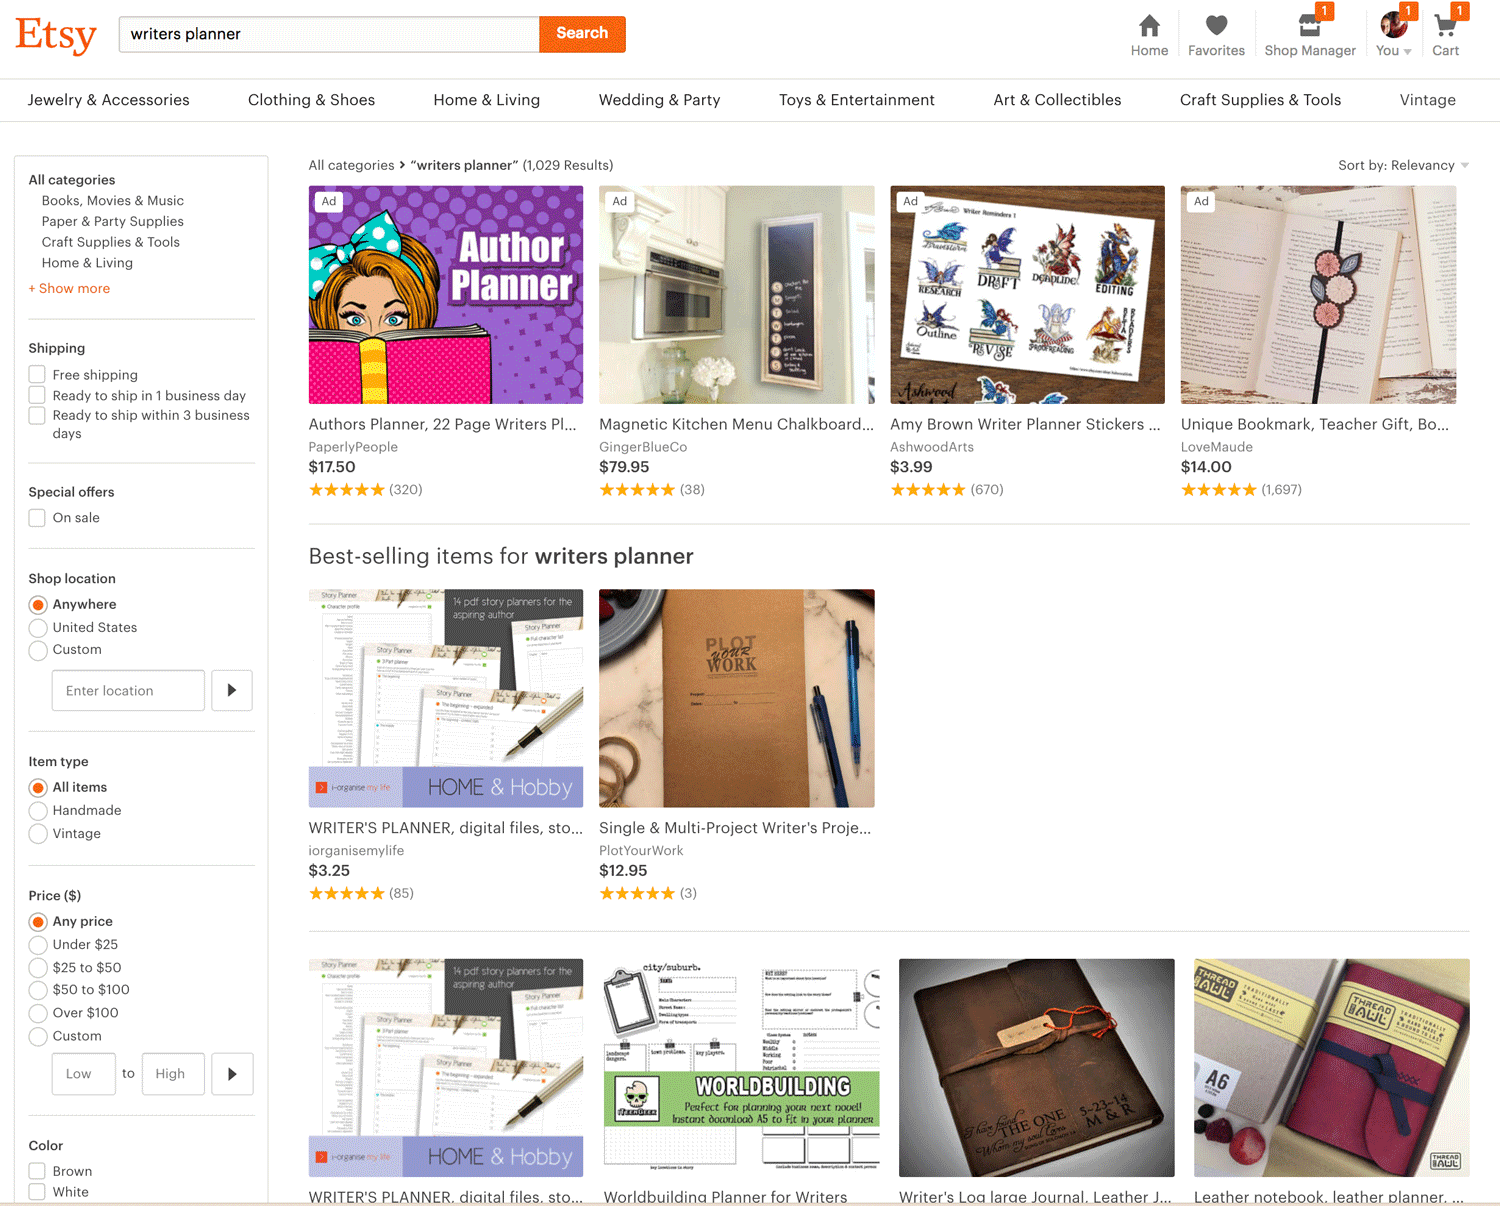 Writers Planner Etsy SEO Results Page